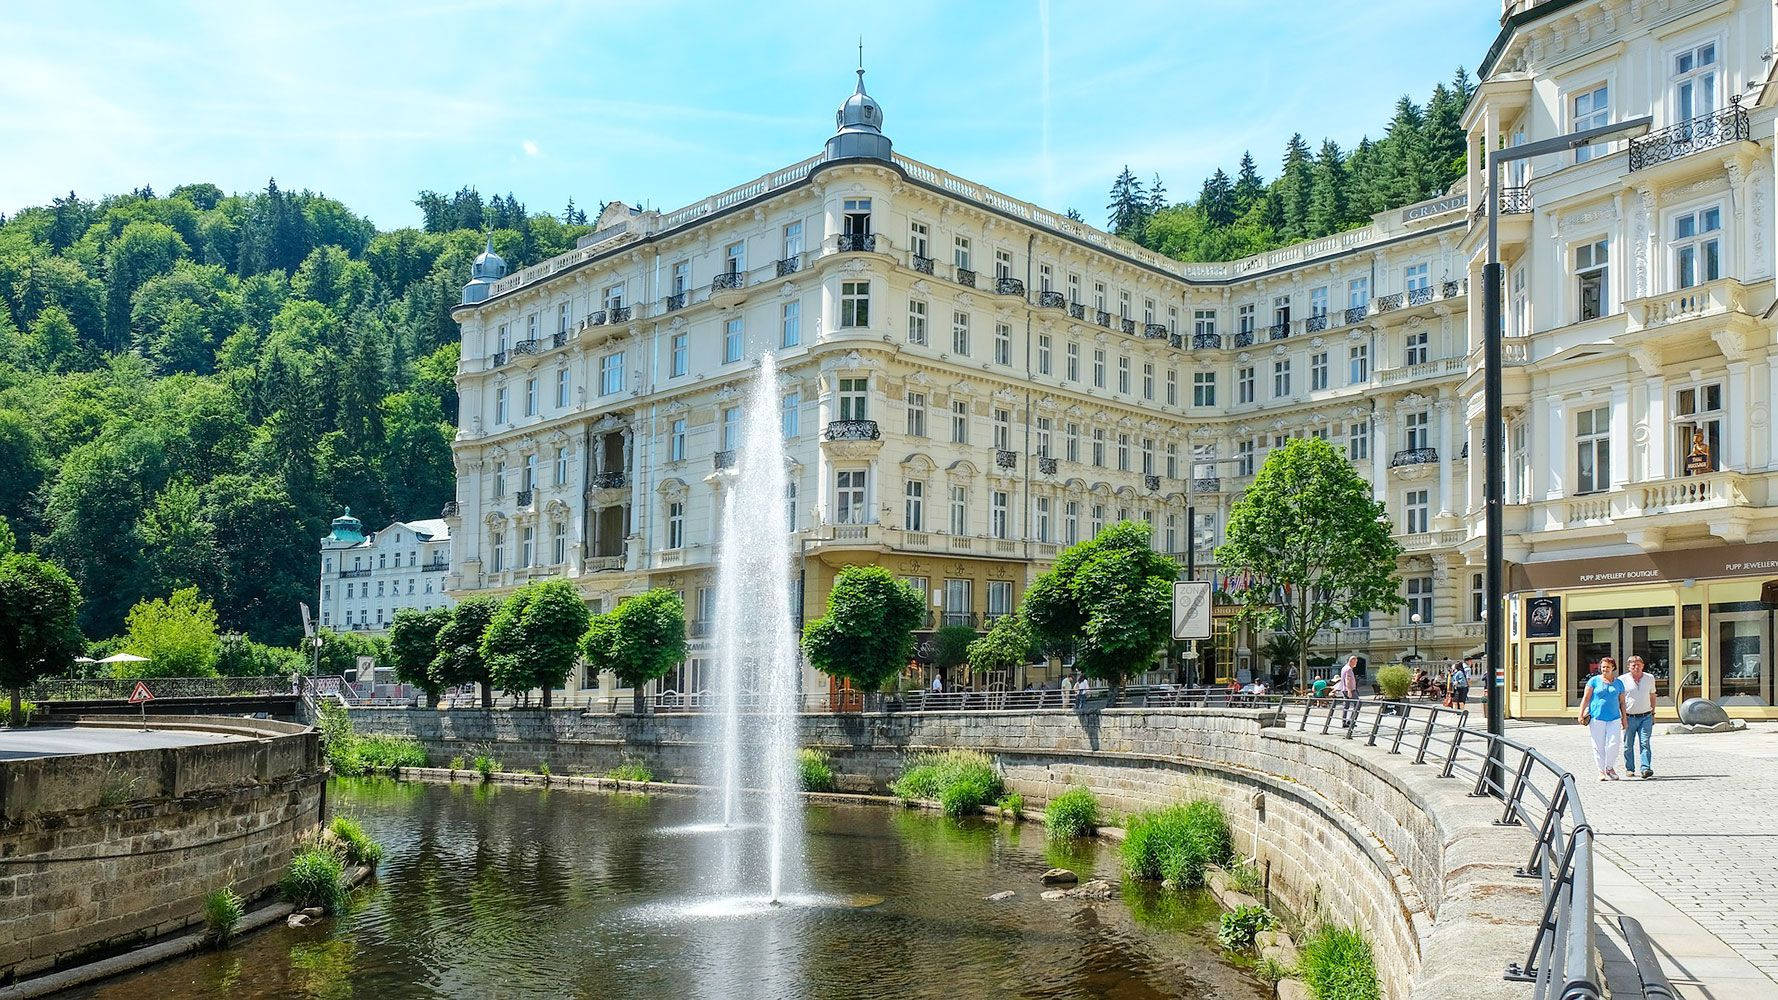 the famous hotel Pupp in Karlovy Vary